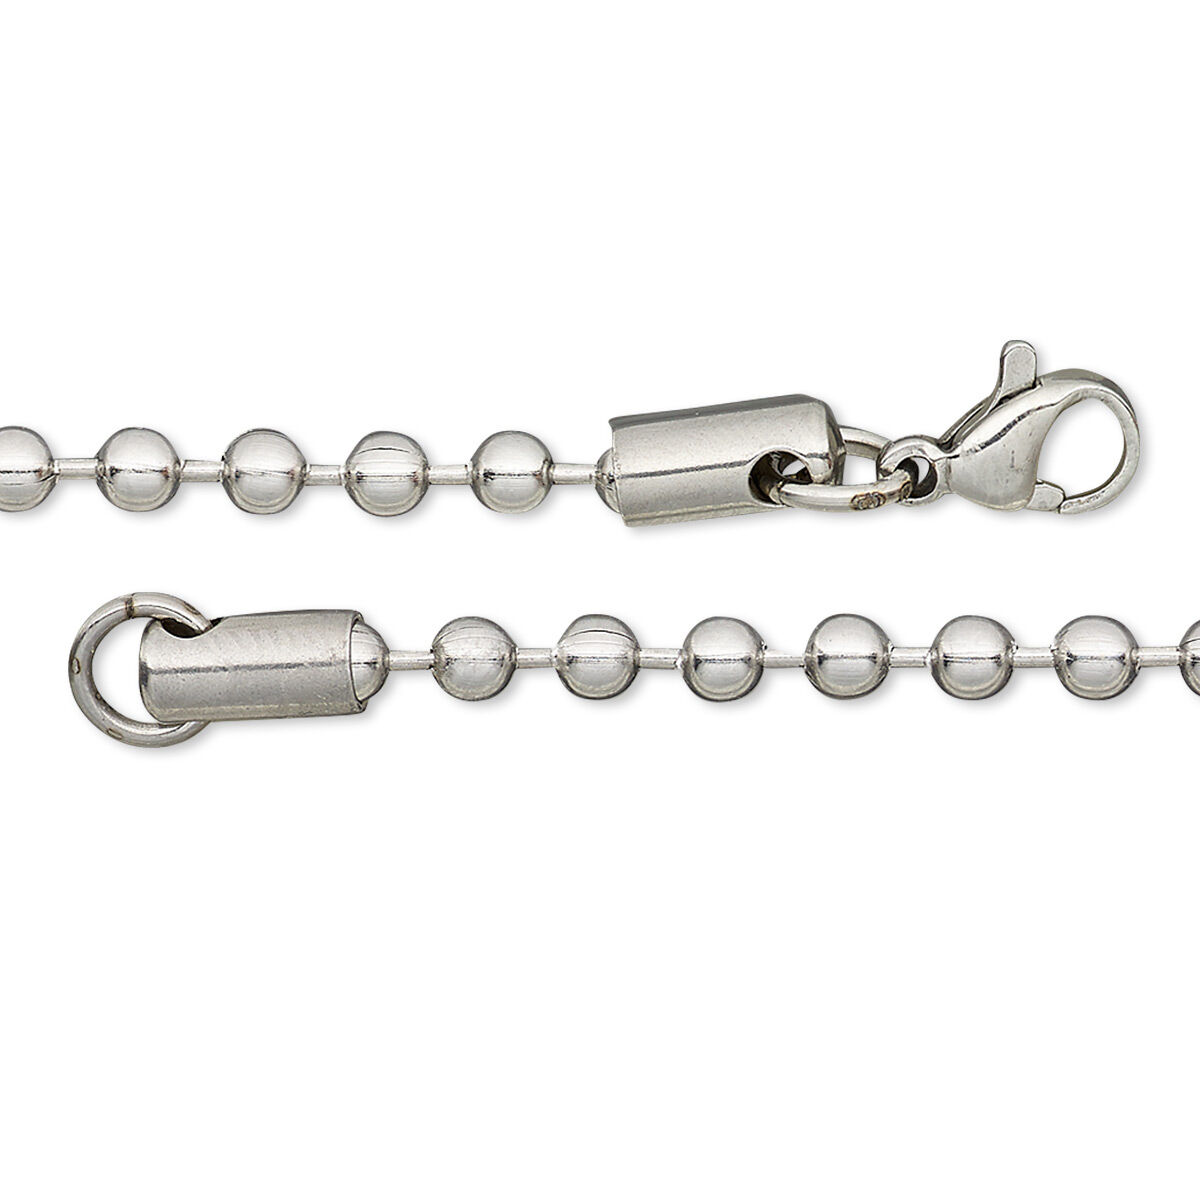 solid 304 surgical stainless steel 3 2mm